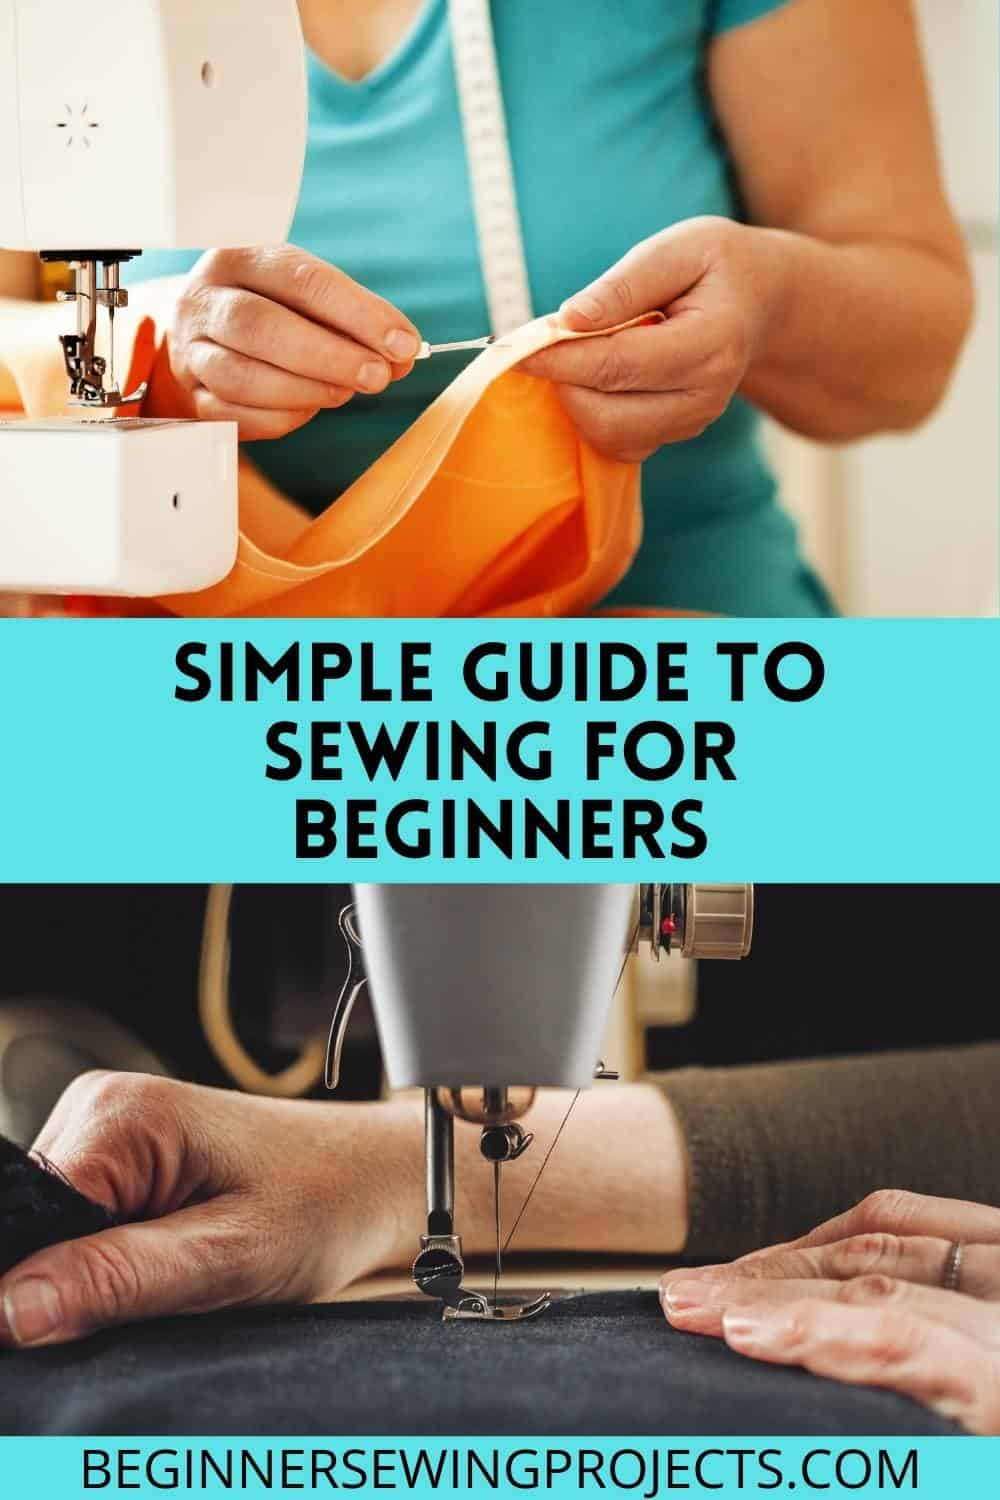 Simple Guide To Sewing For Beginners